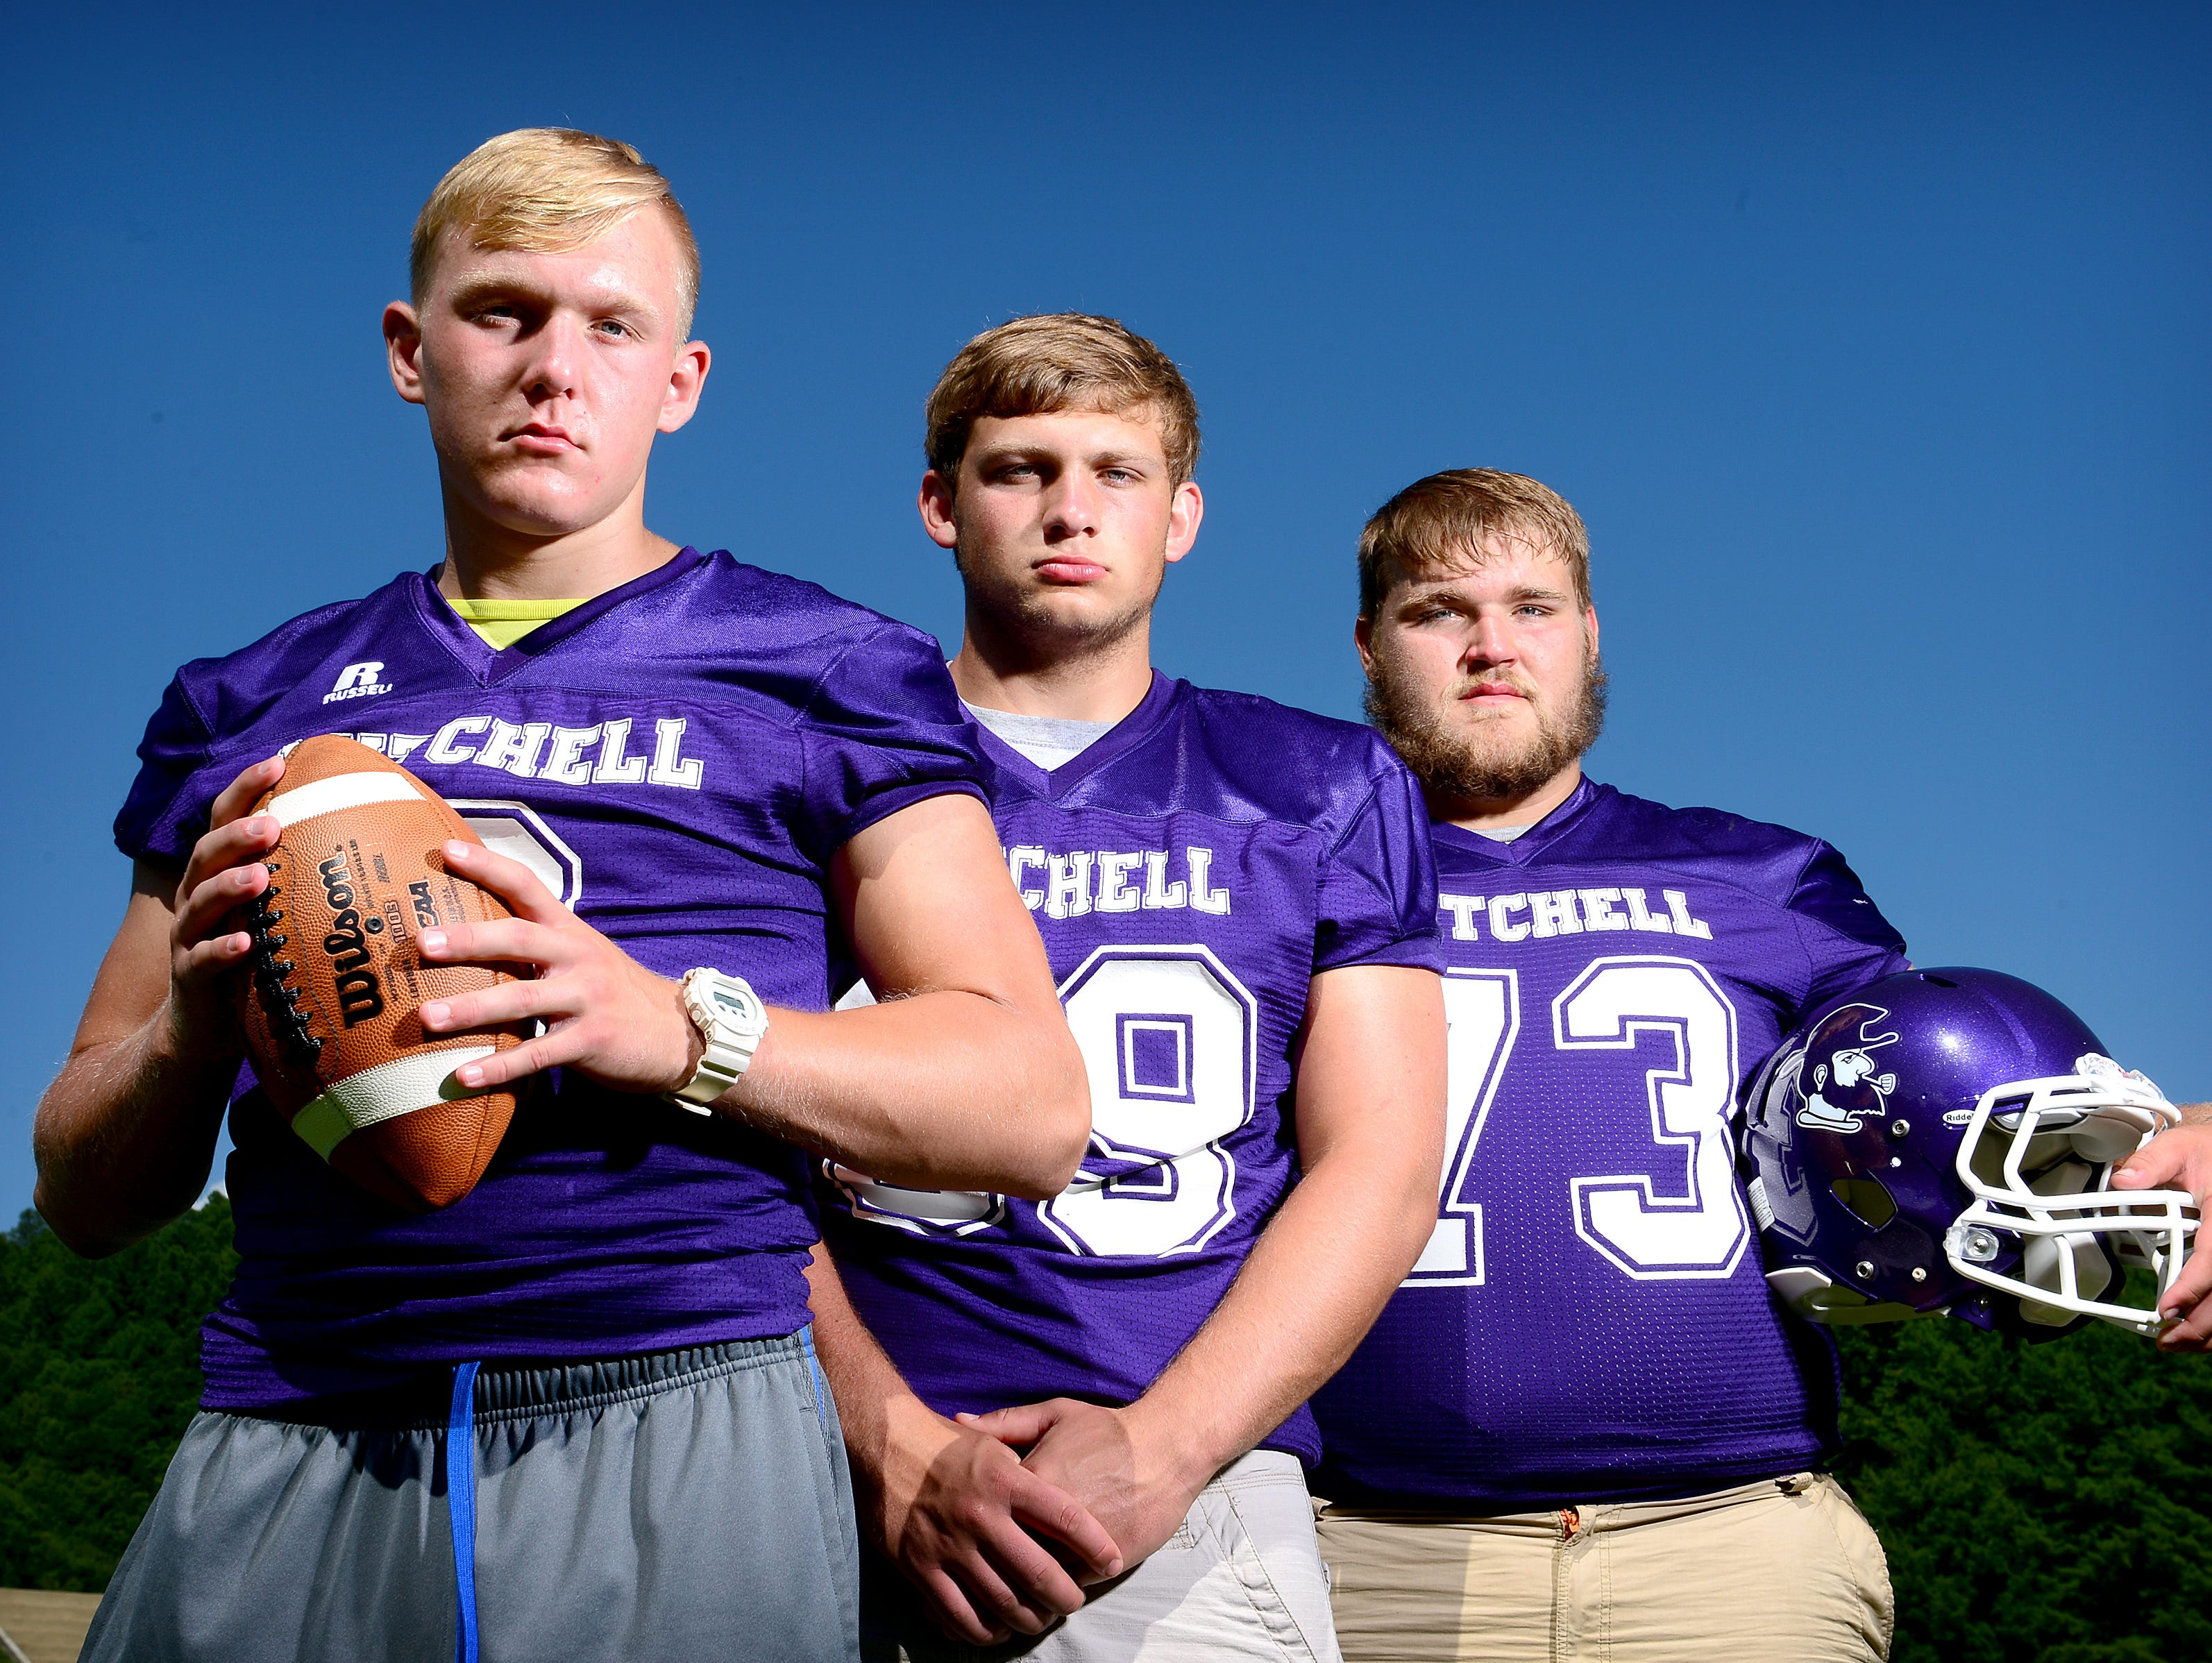 Mitchell football players, from left to right, Ben Young, Alex McKinney and Todd Self.